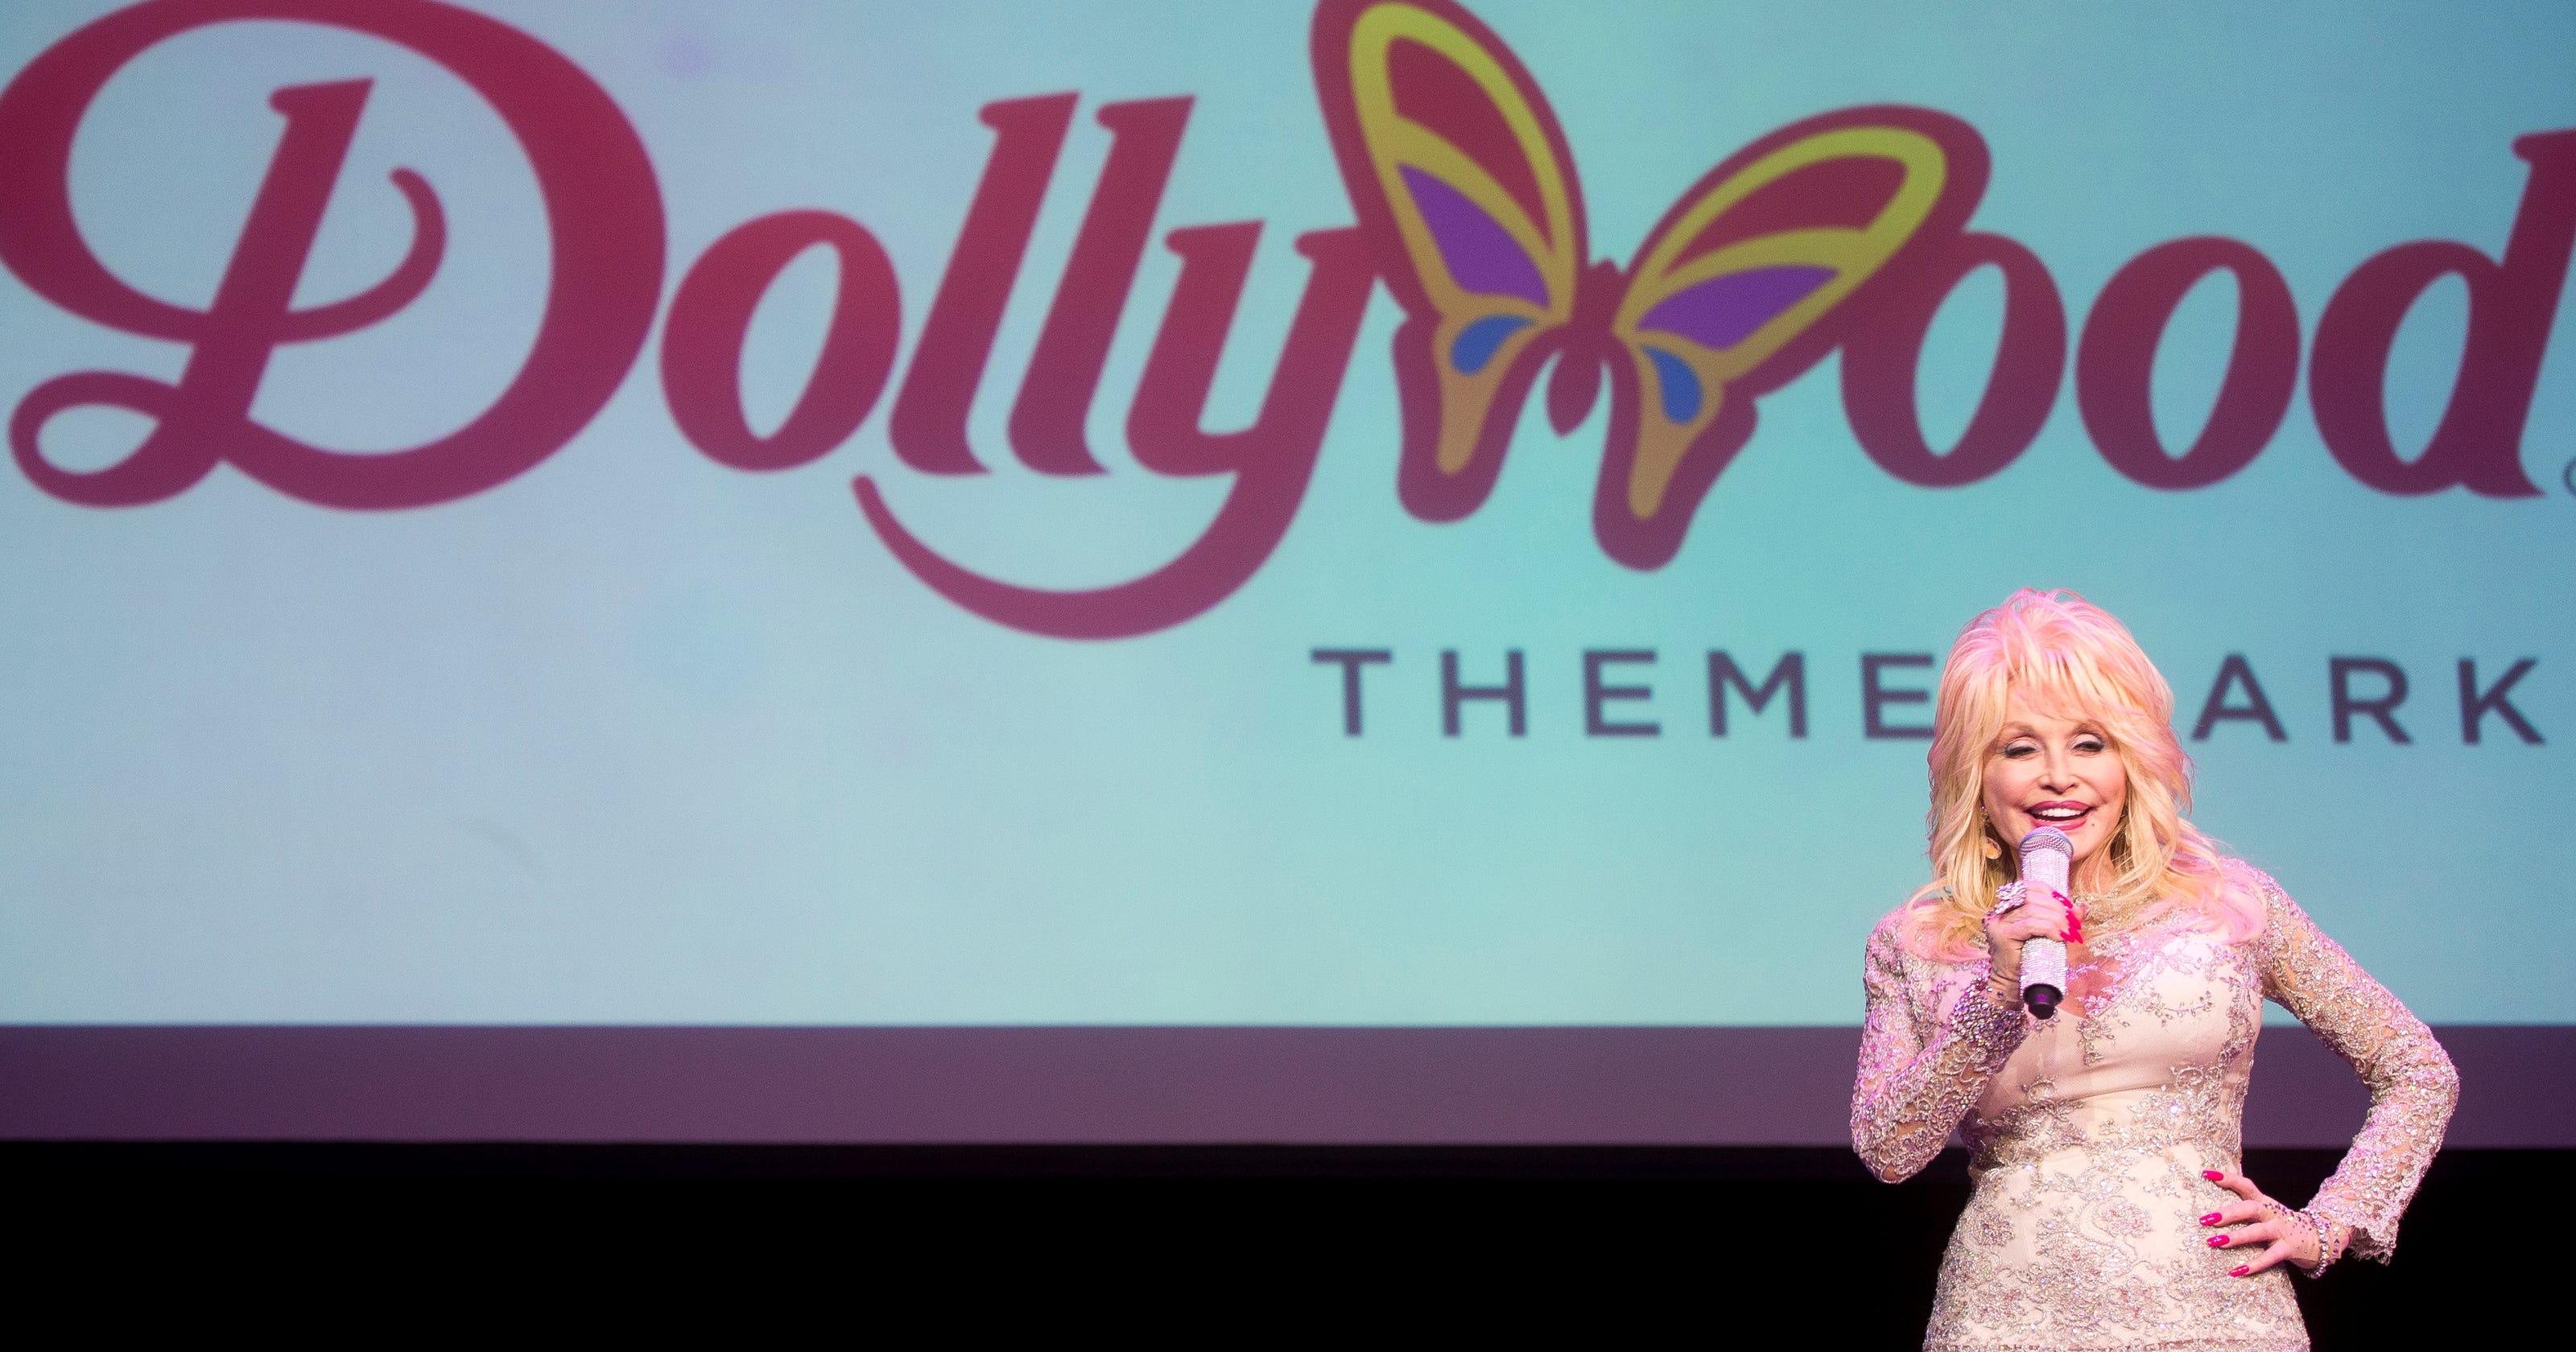 Dollywood announces Festival of Nations line up, Spring Mix